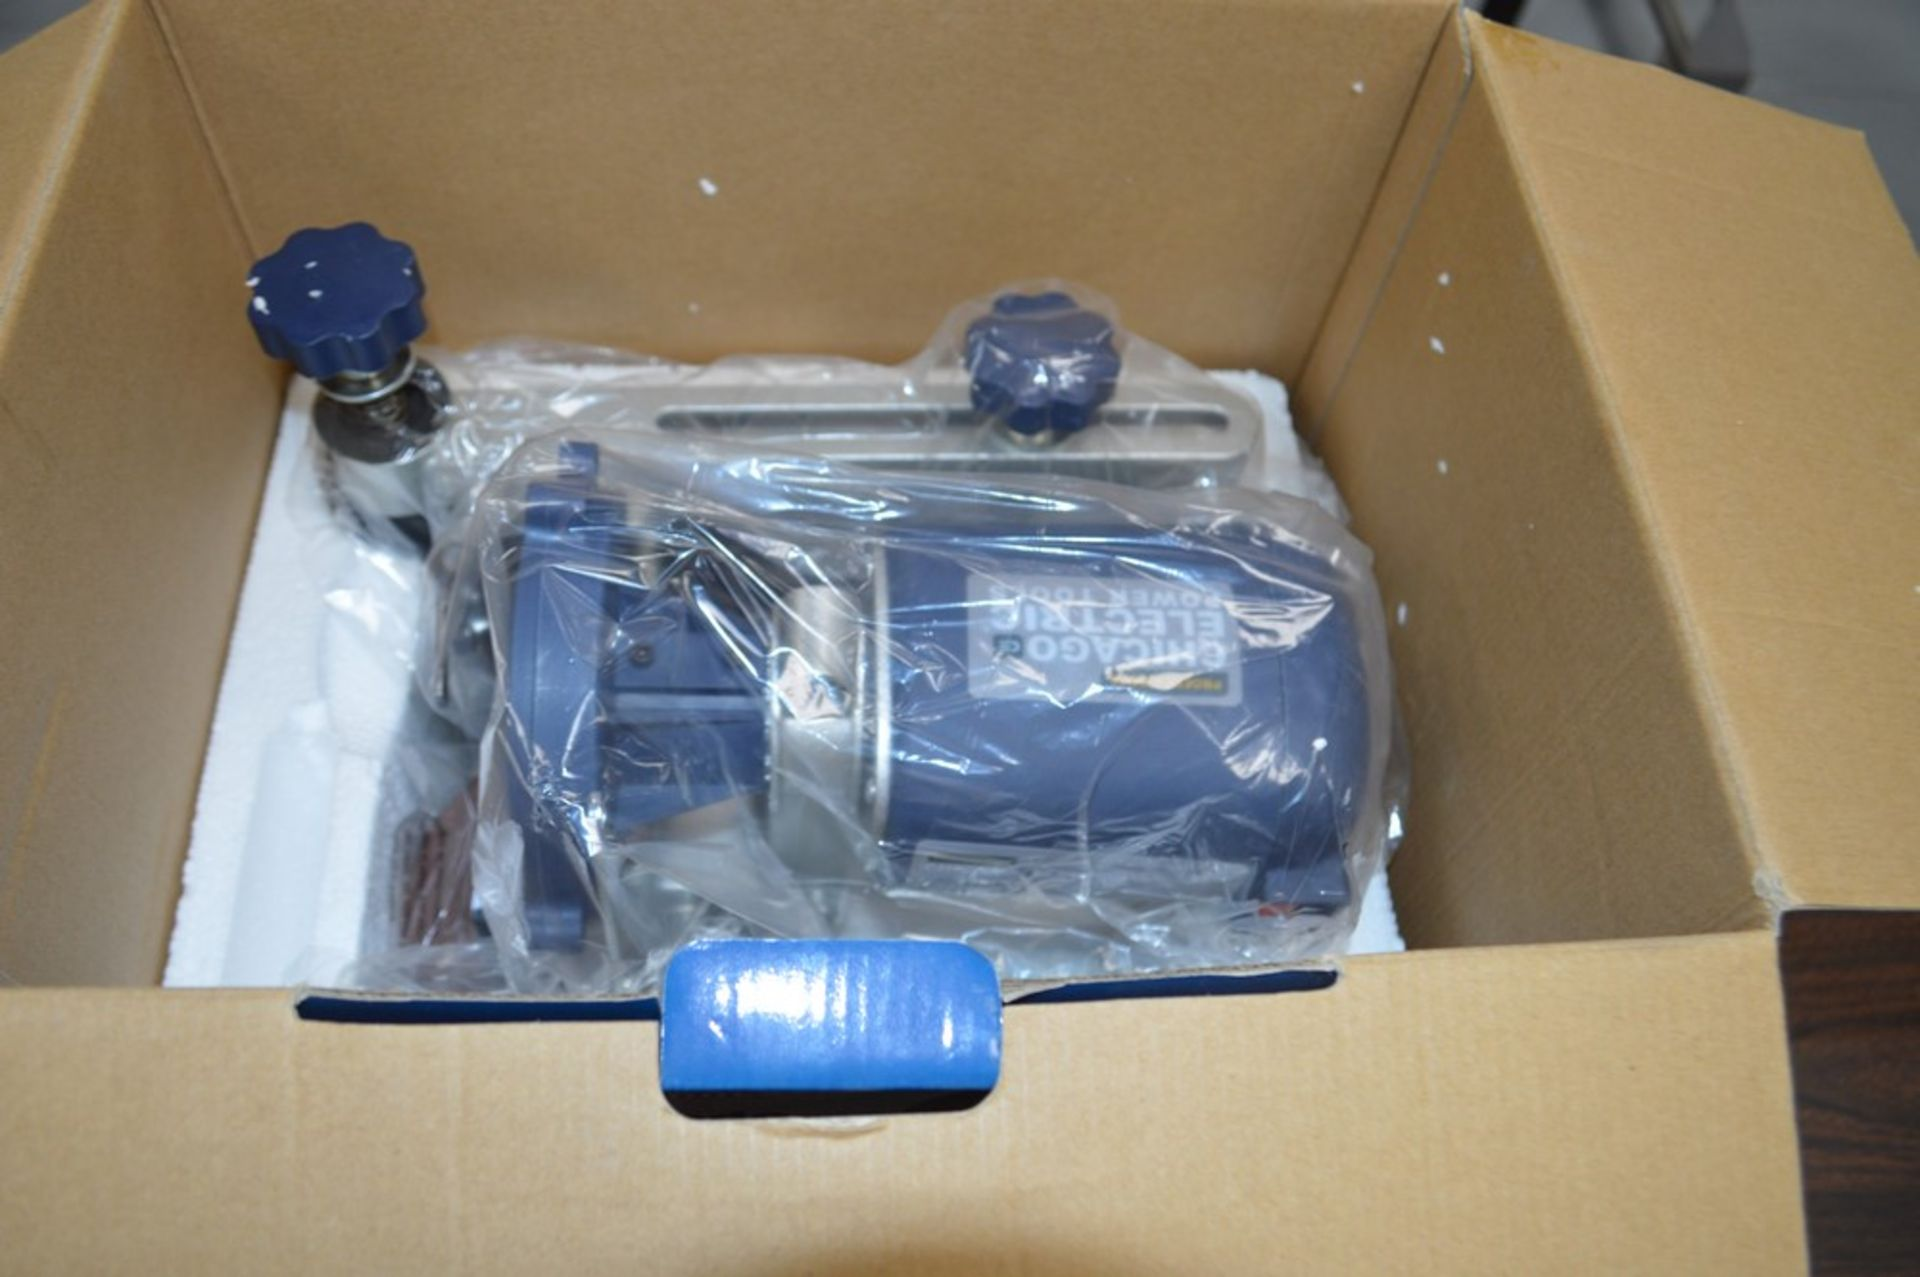 Chicago Electric 120v circular saw blade sharpner, appears new in the box - Image 2 of 4